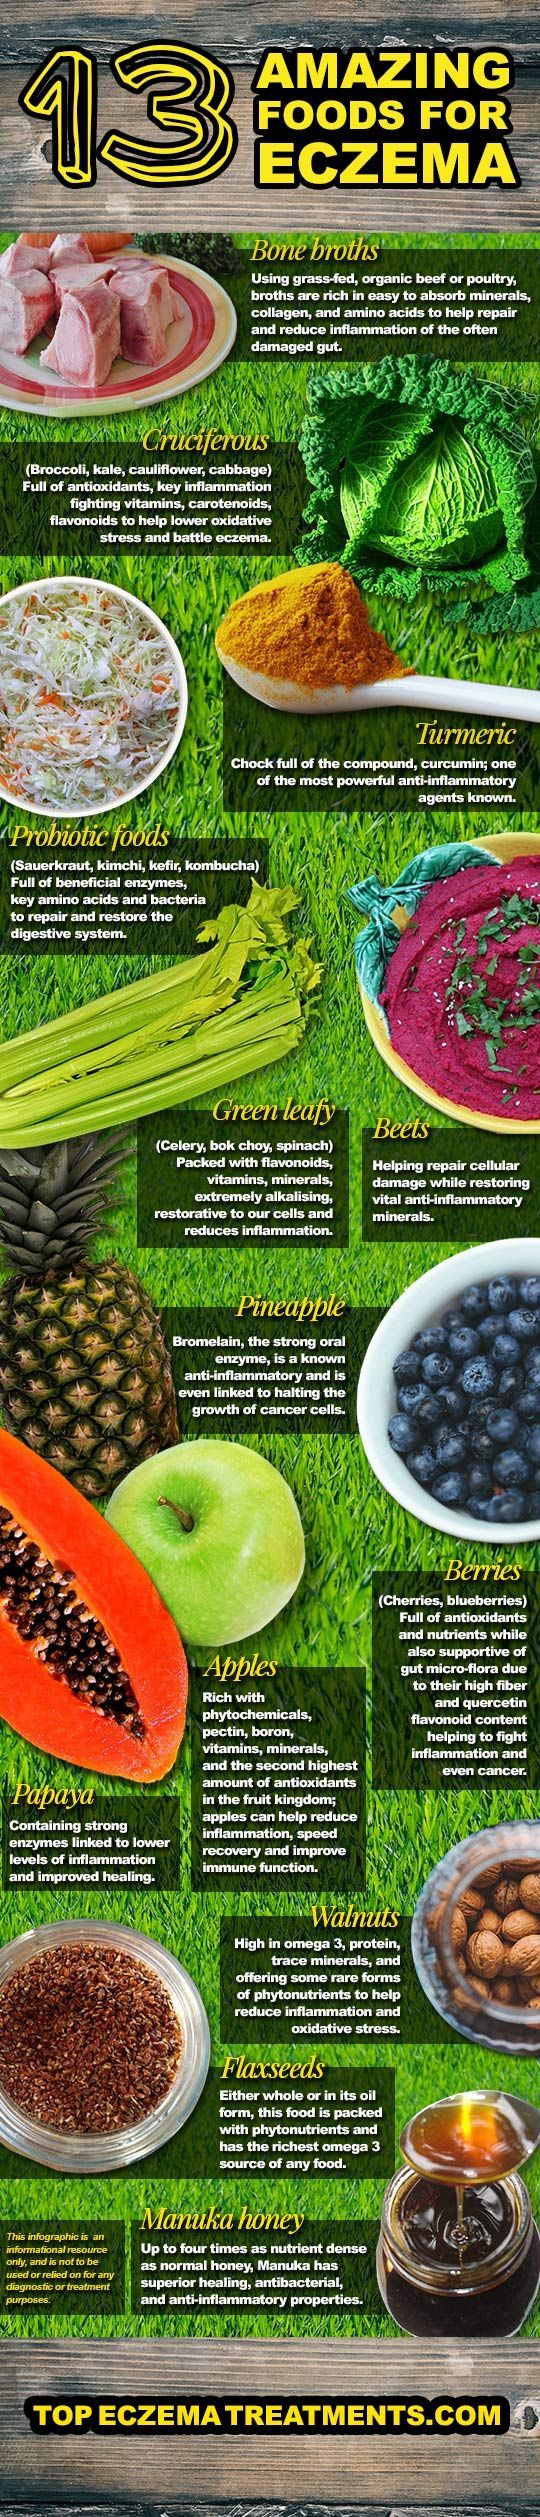 Eczema 13 Super Foods Good for Eczema